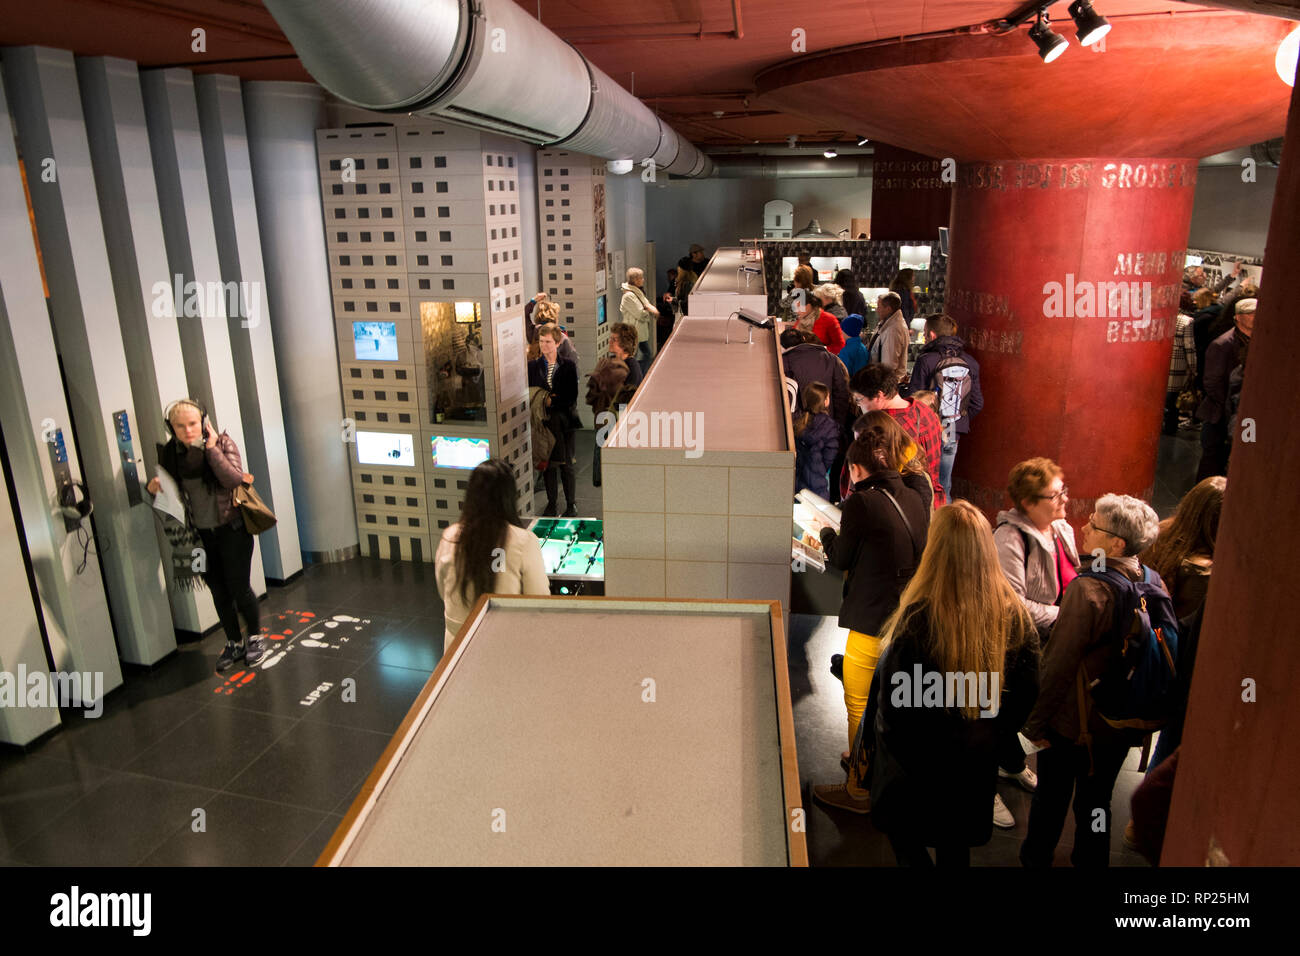 The DDR museum in Berlin, Germany. - Stock Image